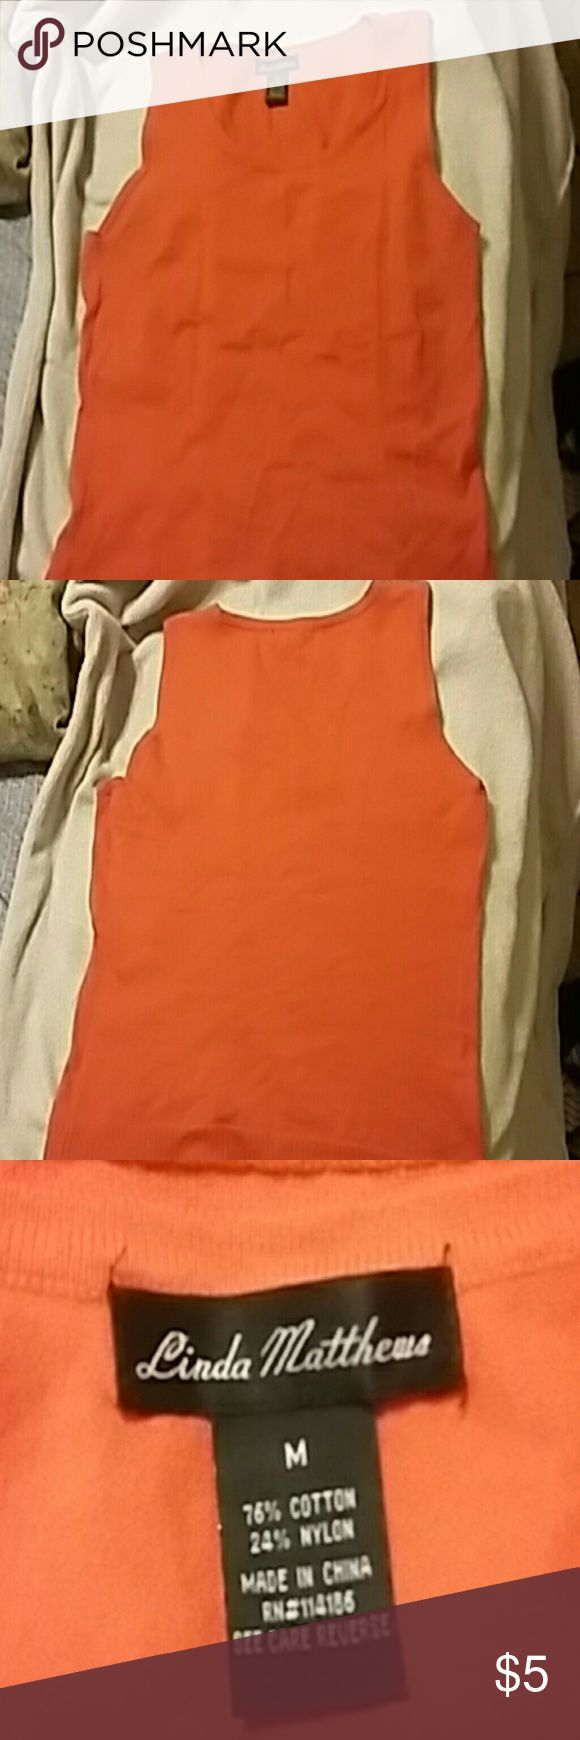 NEW ITEM ***CLOSET SALE*** Orange pullover vest Orange sleevless pullover best Great over shirt or tee Wear with jeans,skirt,or slacks 36 bust Sweaters Crew & Scoop Necks